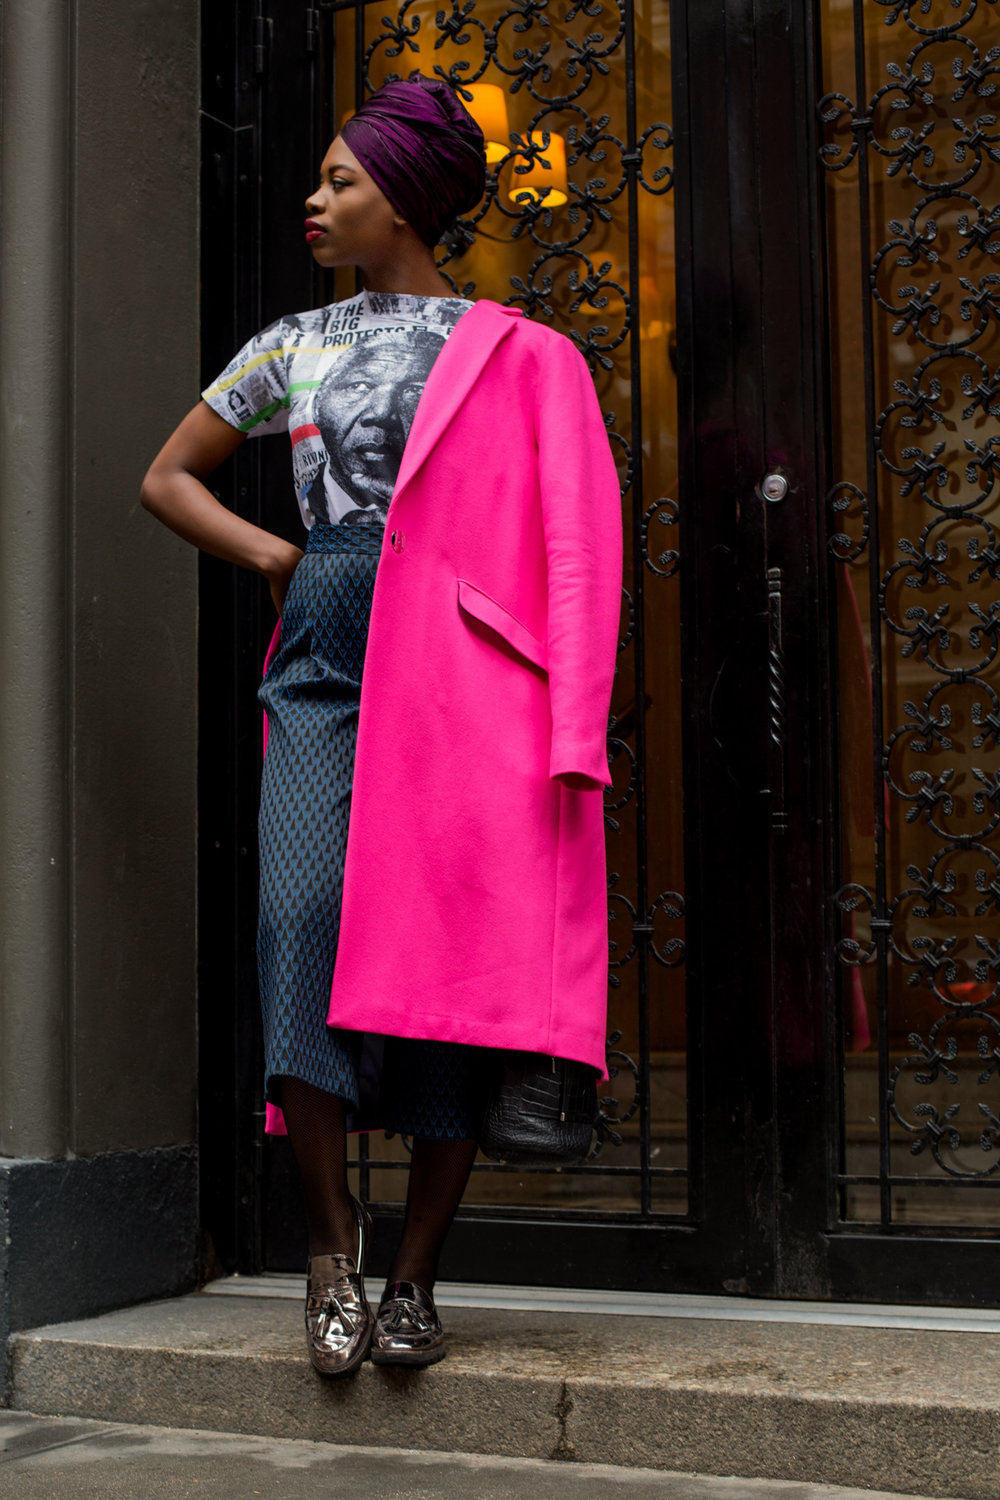 A Very Bright Pink Coat — Finding Paola